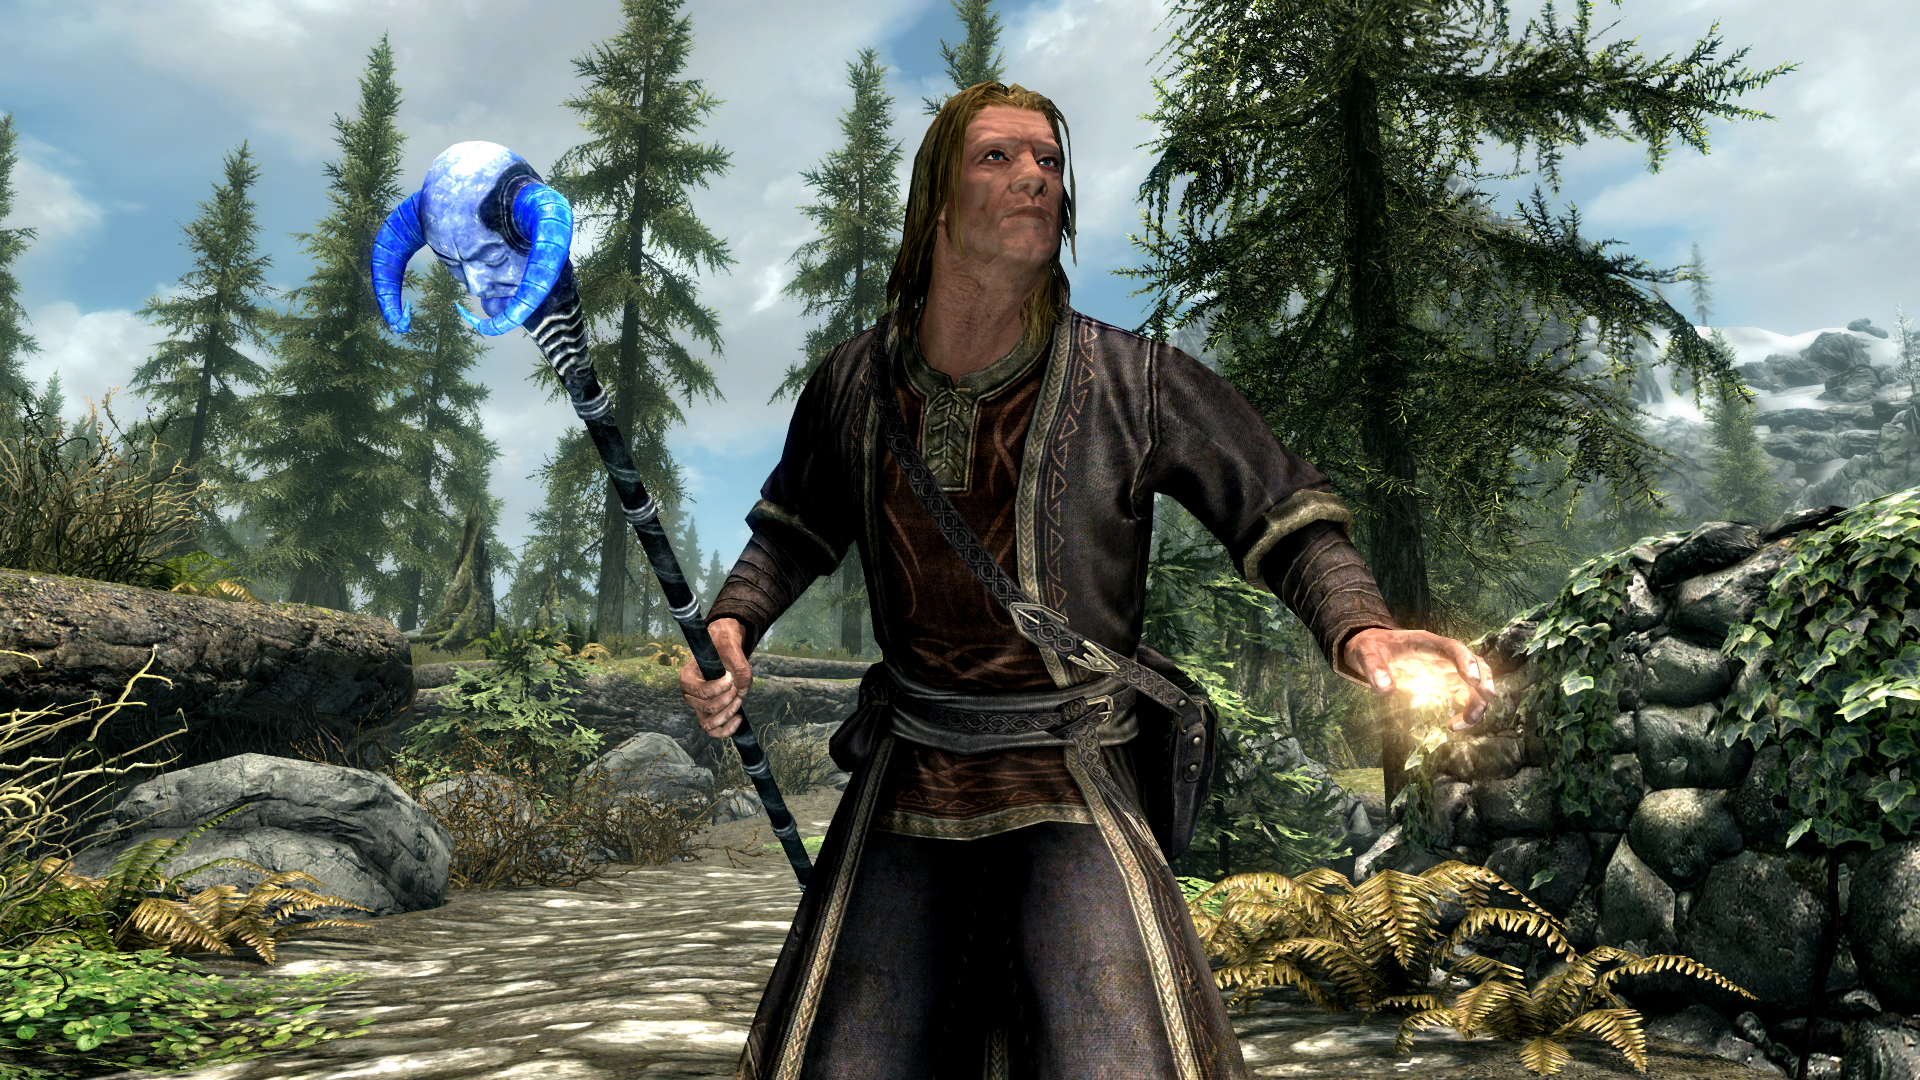 Skyrim Special Edition 1 5 53 Update: What's New